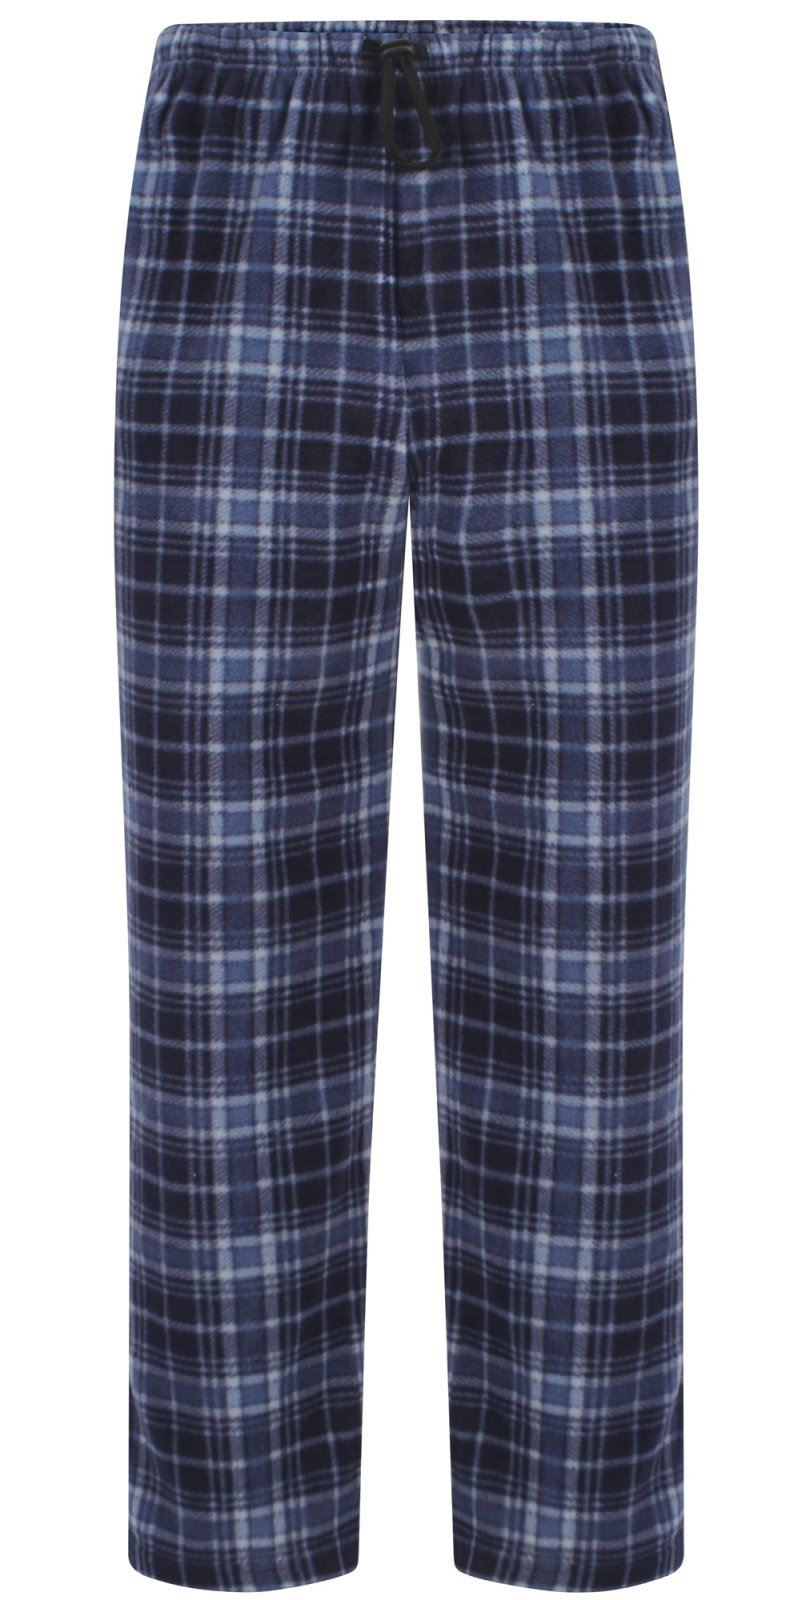 Shop mens sleep bottoms on travabjmsh.ga Free shipping and free returns on eligible items. From The Community. Mens Fleece Pajama Pants, Long Microfiber Pj Bottoms $ 19 99 Prime. out of 5 stars Latuza. Men's Sleep Shorts Loose Lounge Shorts. from $ 12 99 Prime. out of 5 stars